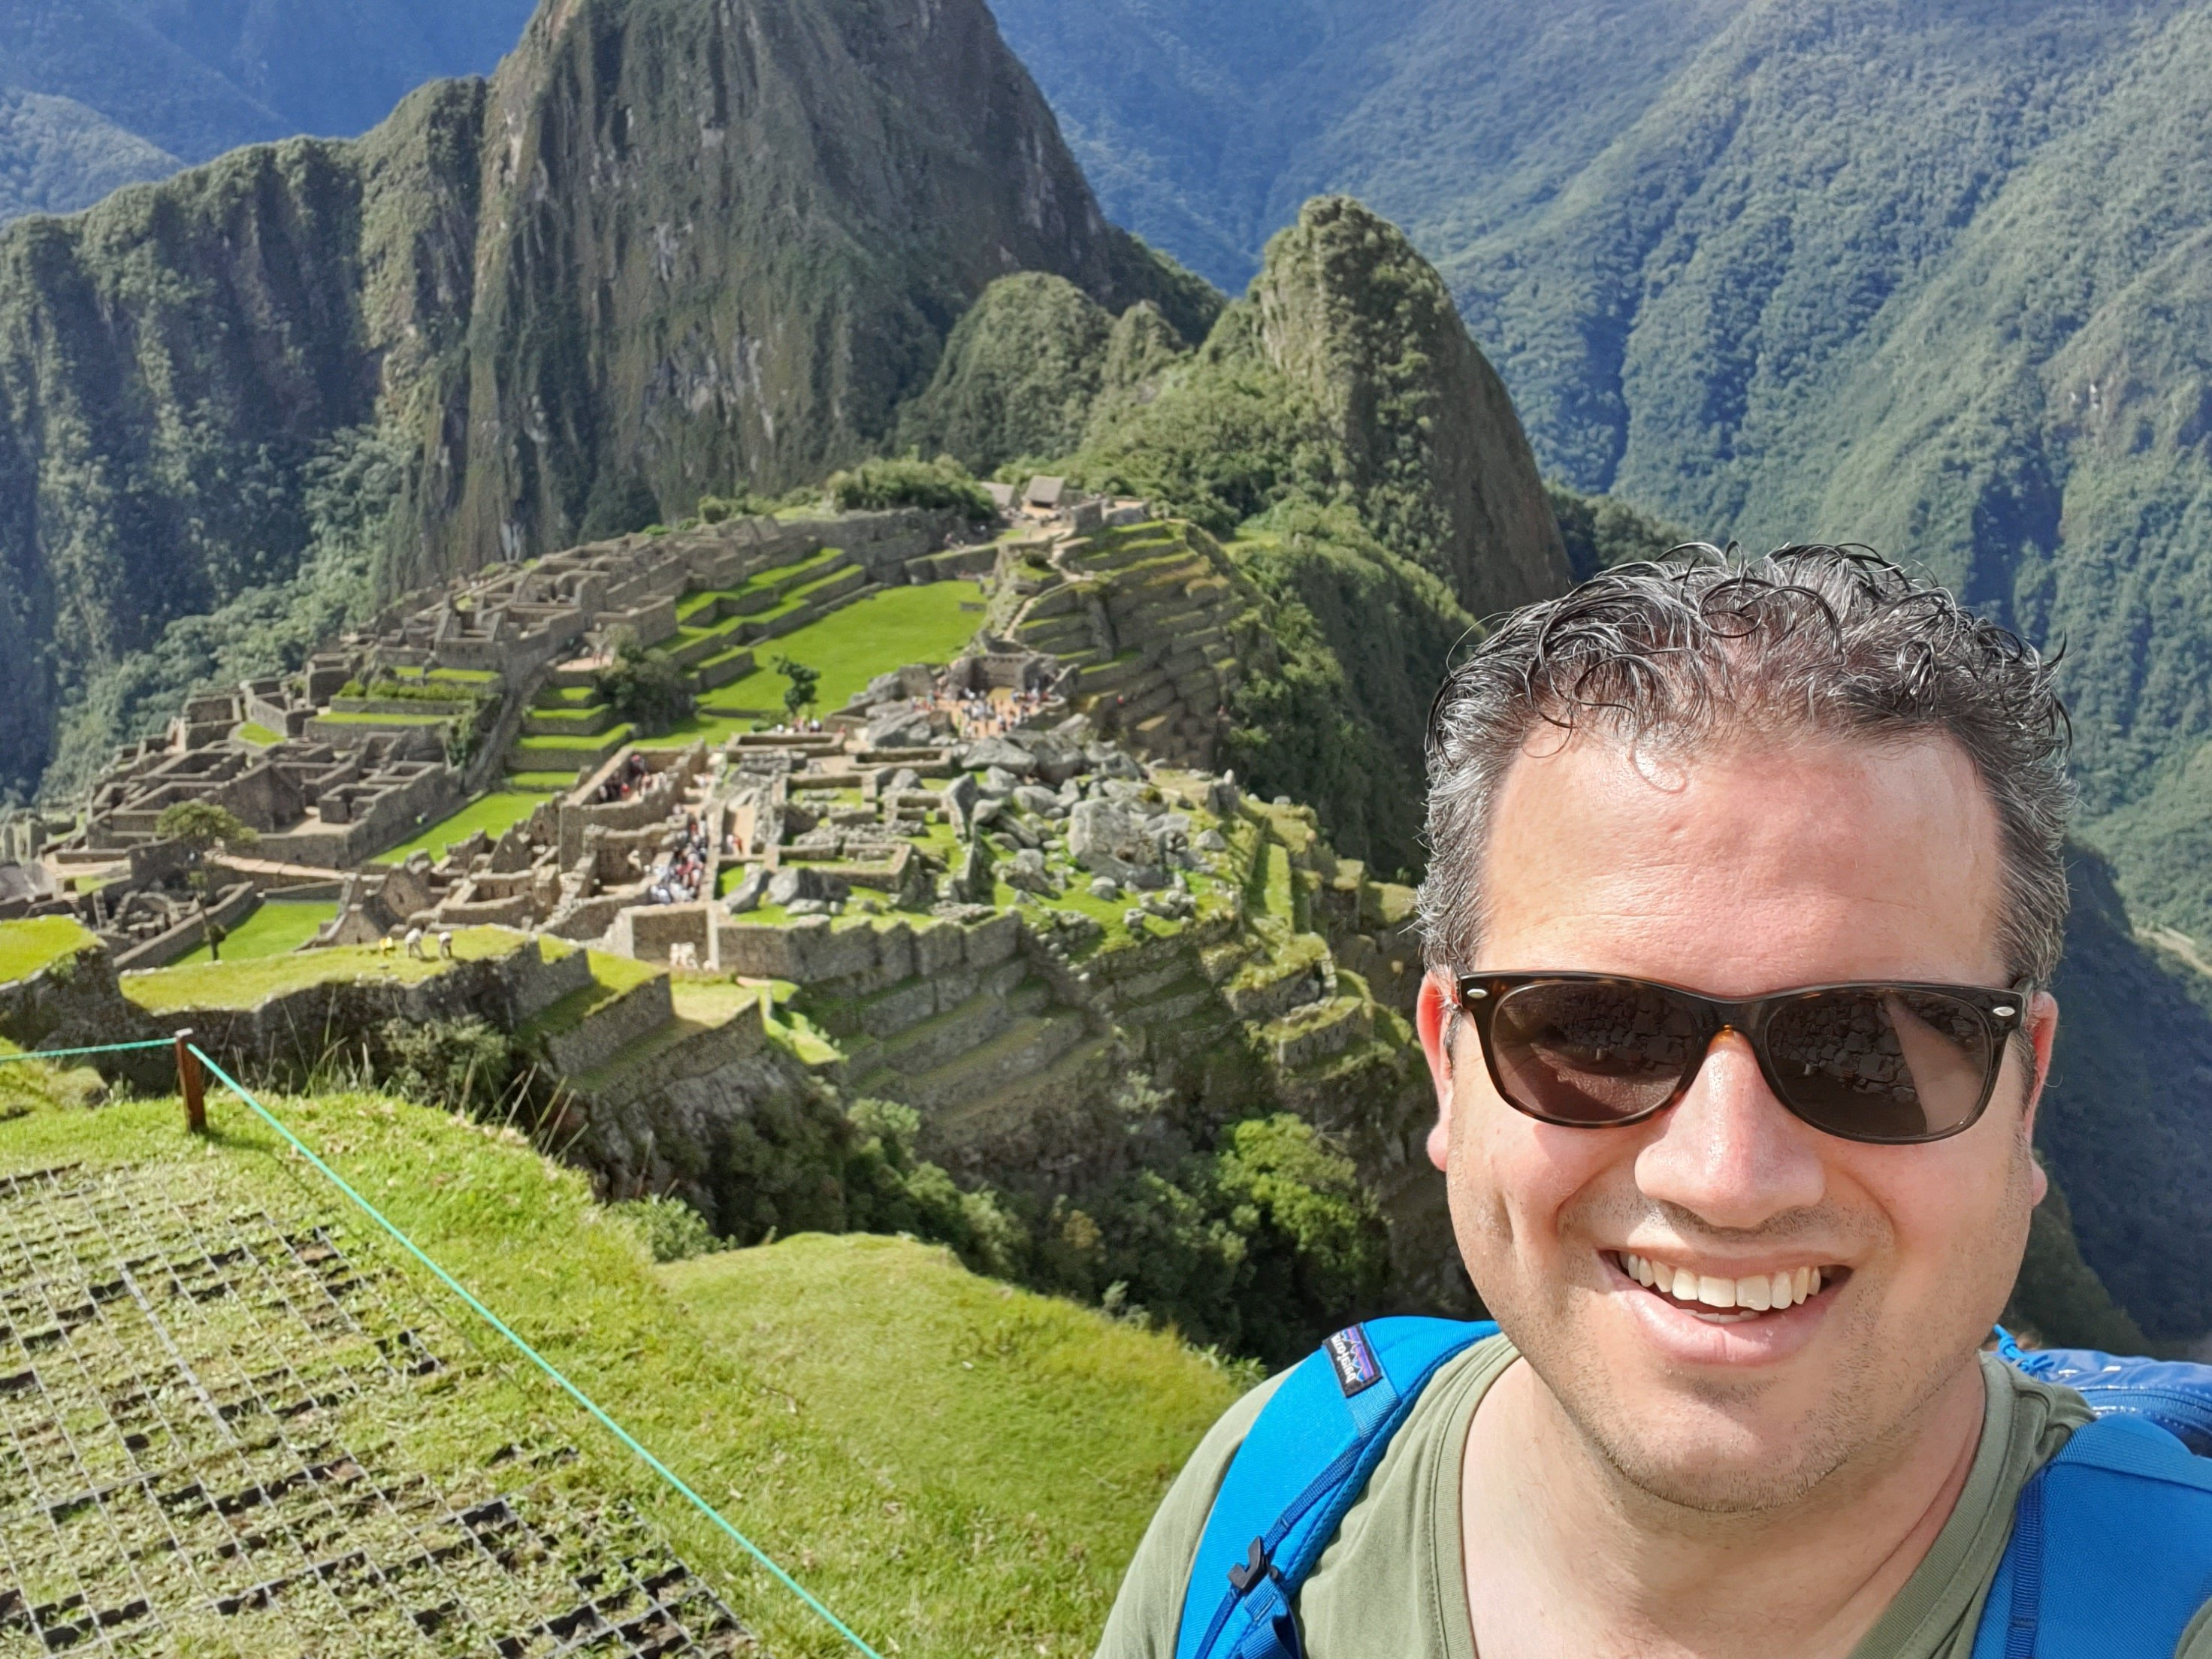 A selfie with Macchu Pichu in the background